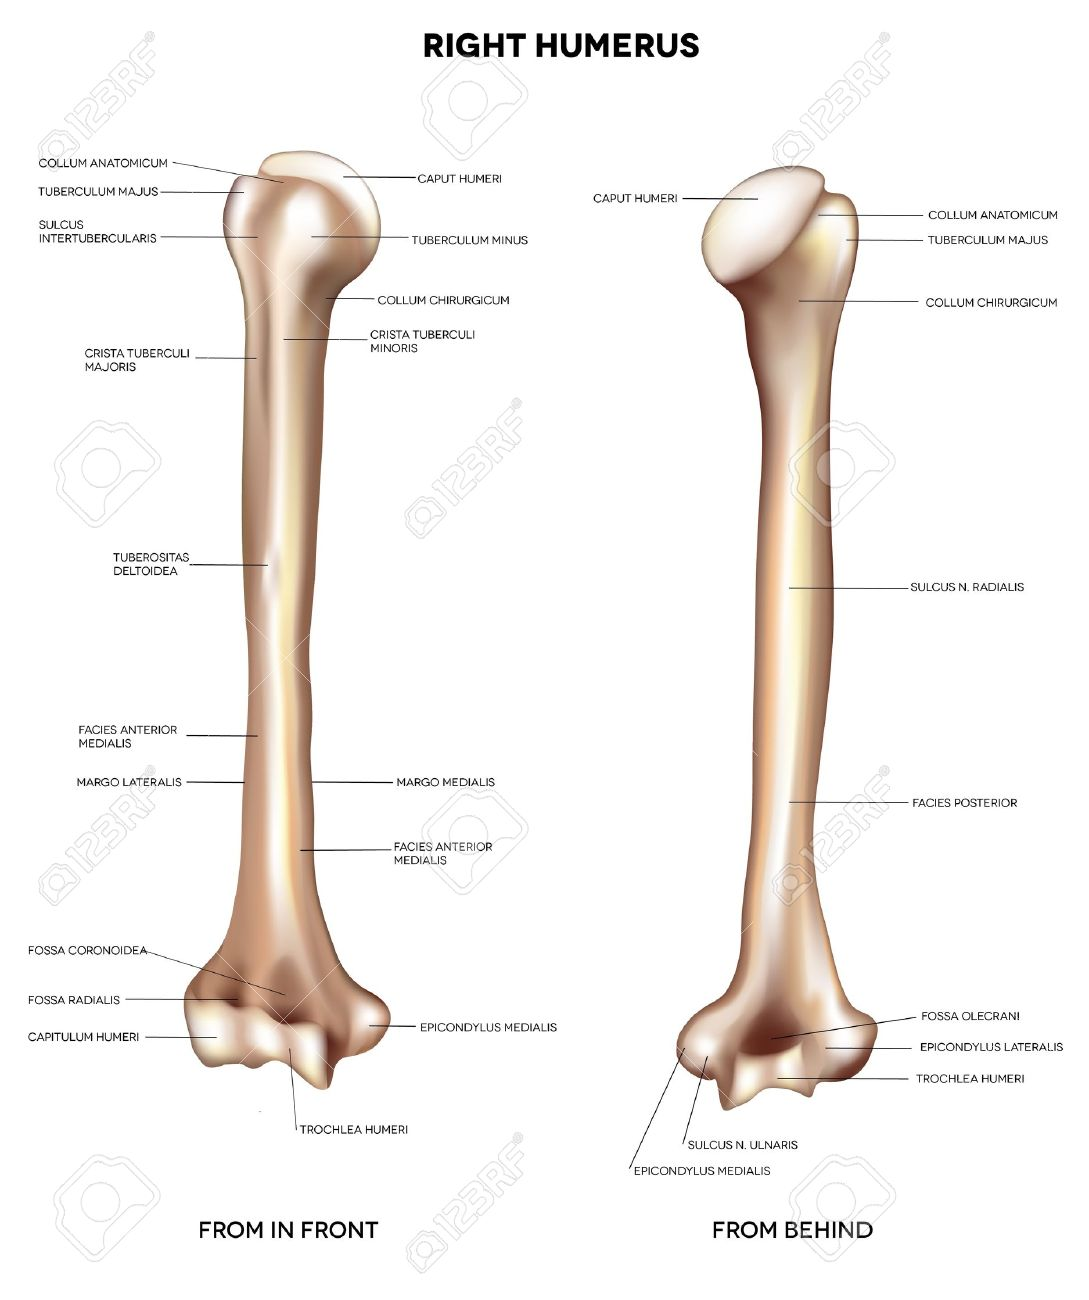 Humerus Upper Arm Bone Detailed Medical Illustration From Royalty